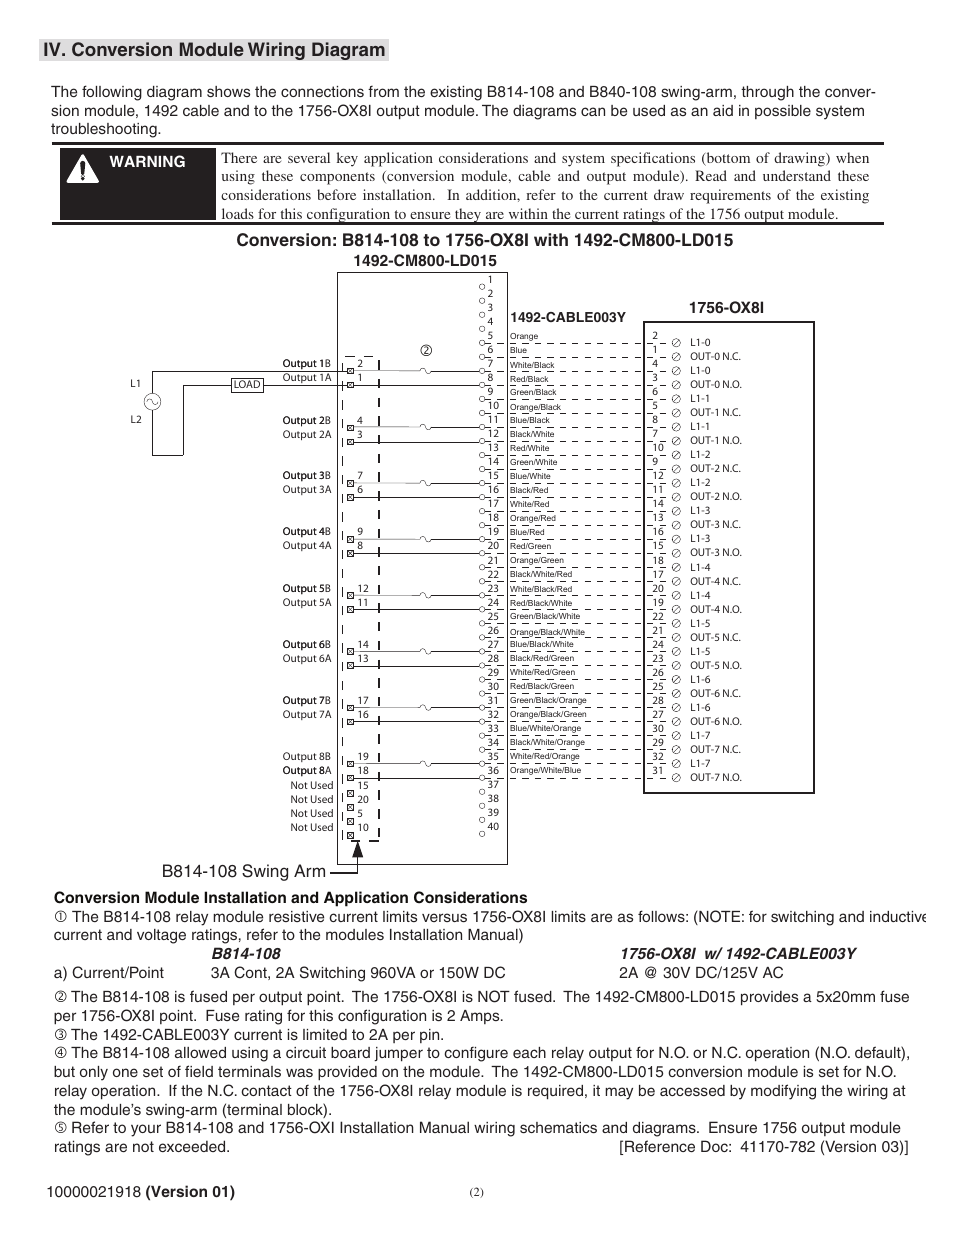 Iv. conversion module wiring diagram | Rockwell Automation 1492 ...